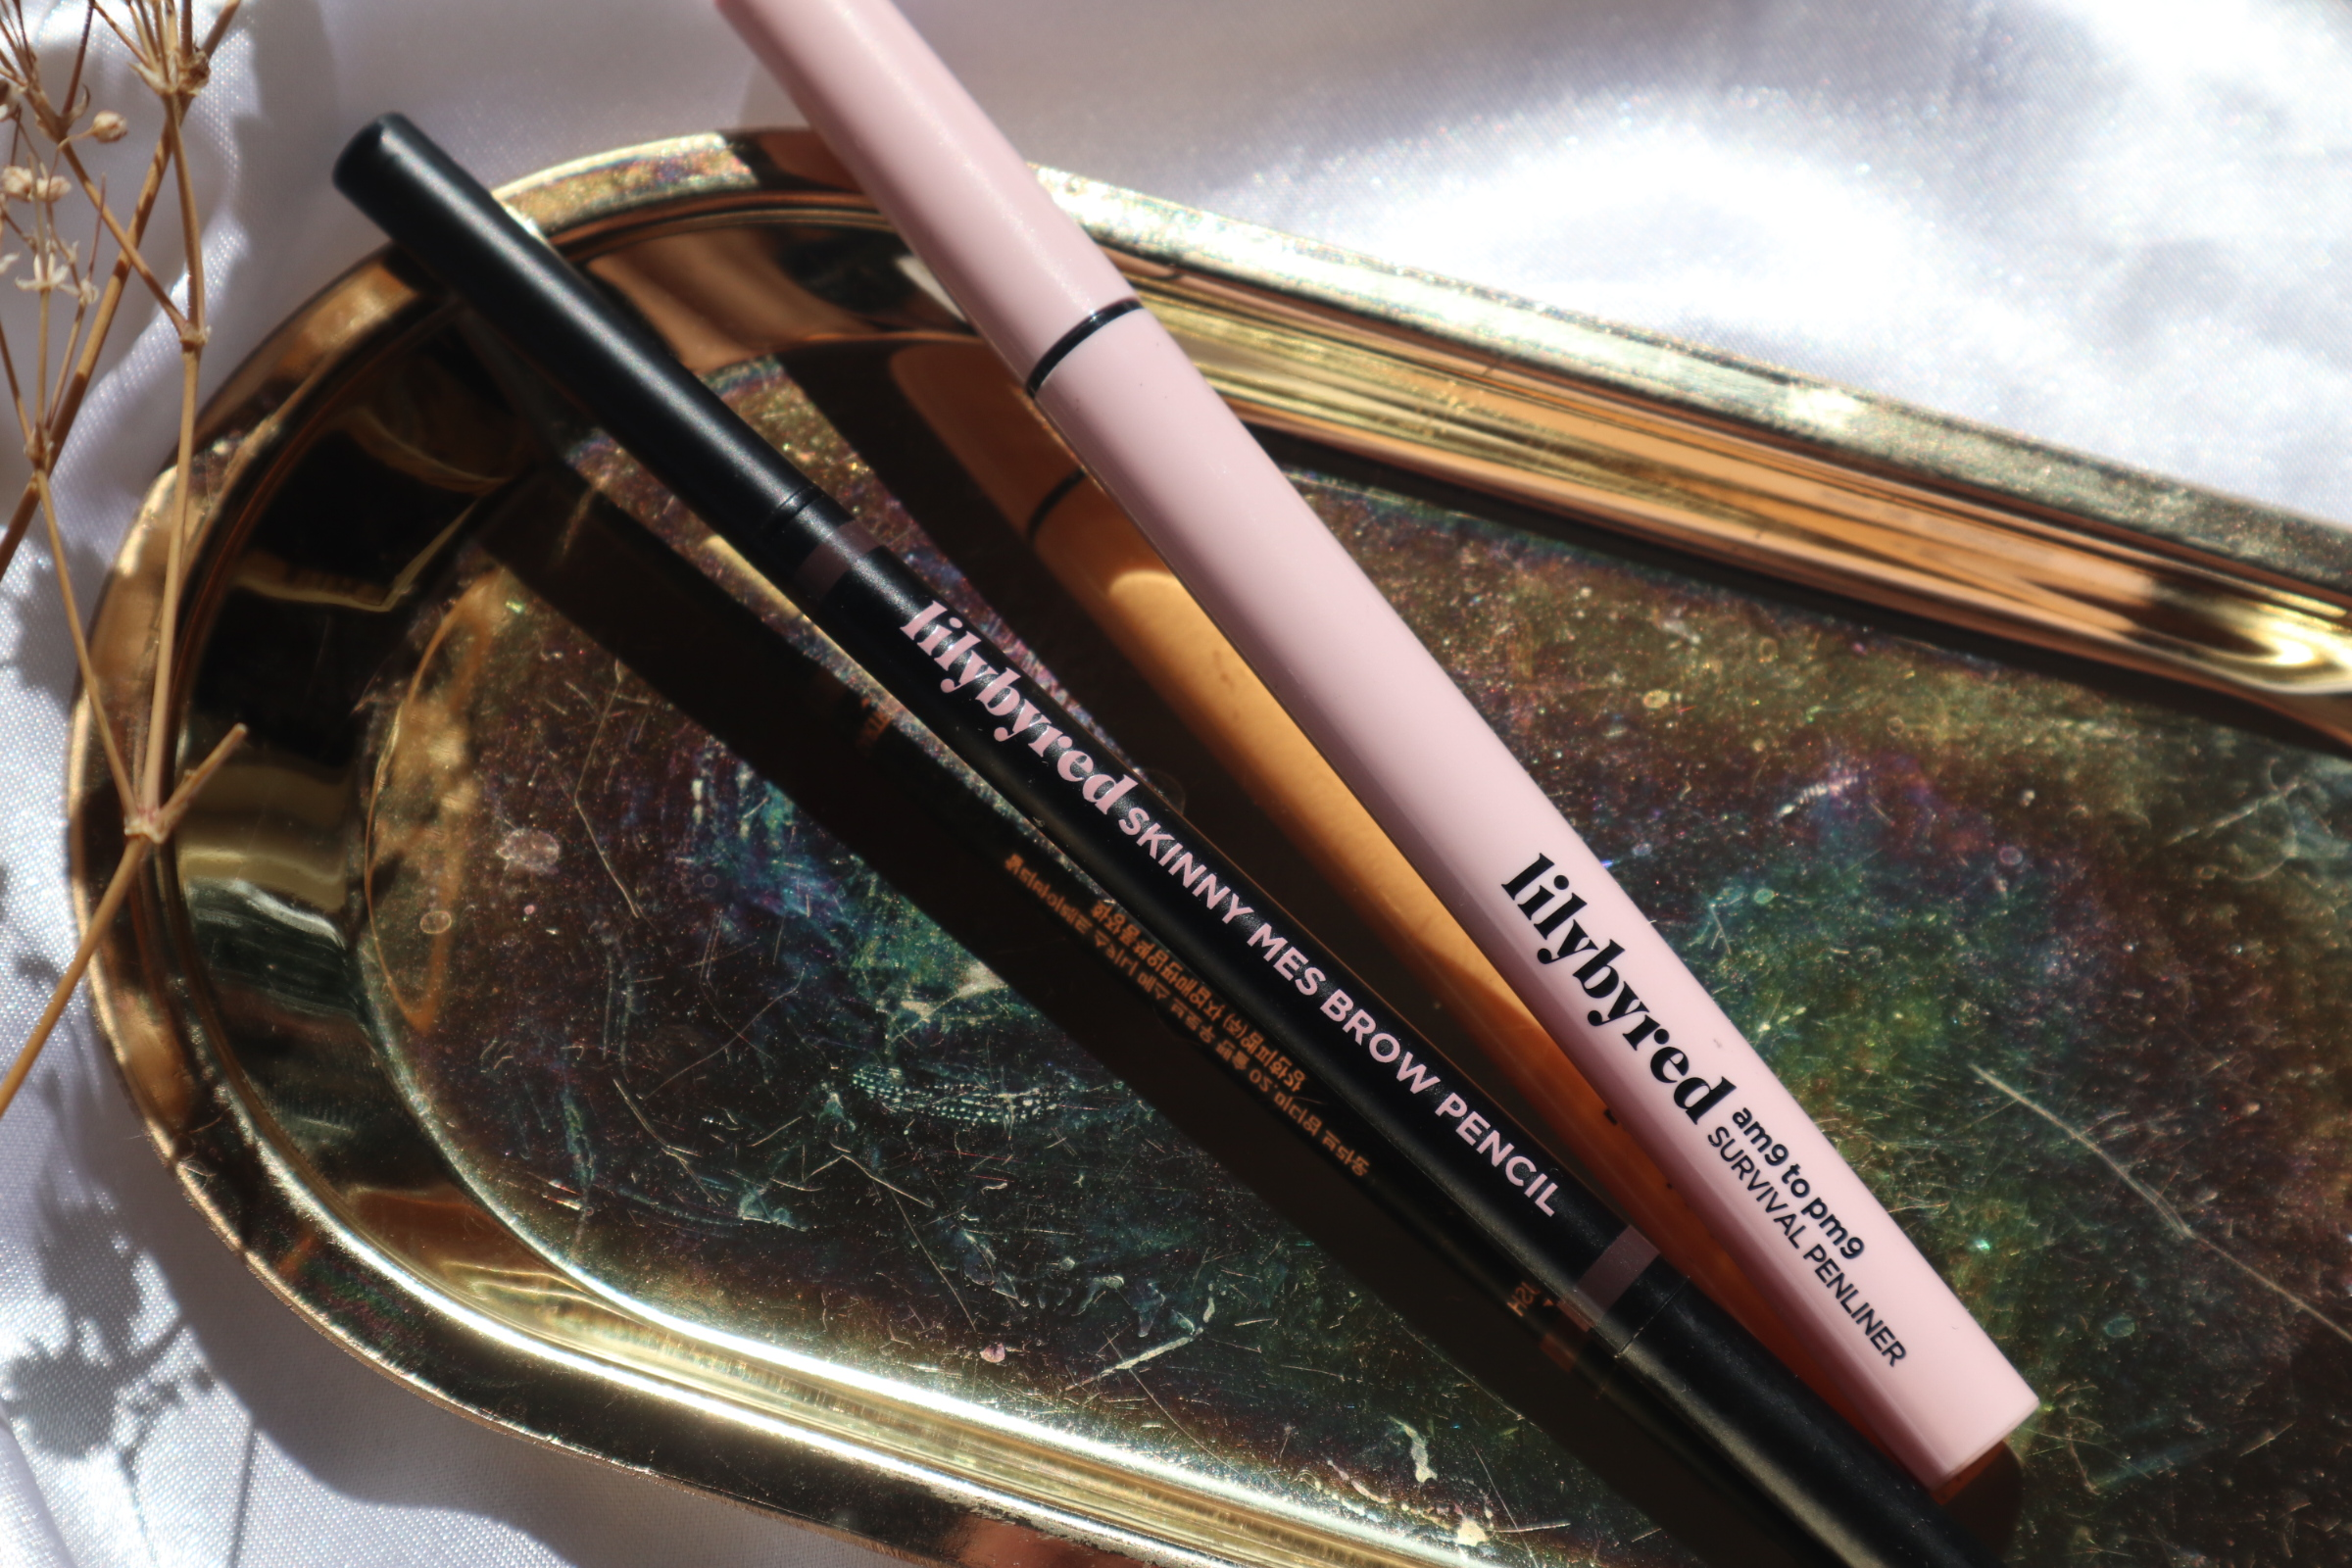 Lilybyred 9AM to 9PM Survival Penliner & Skinny Mes Brow Pencil Review